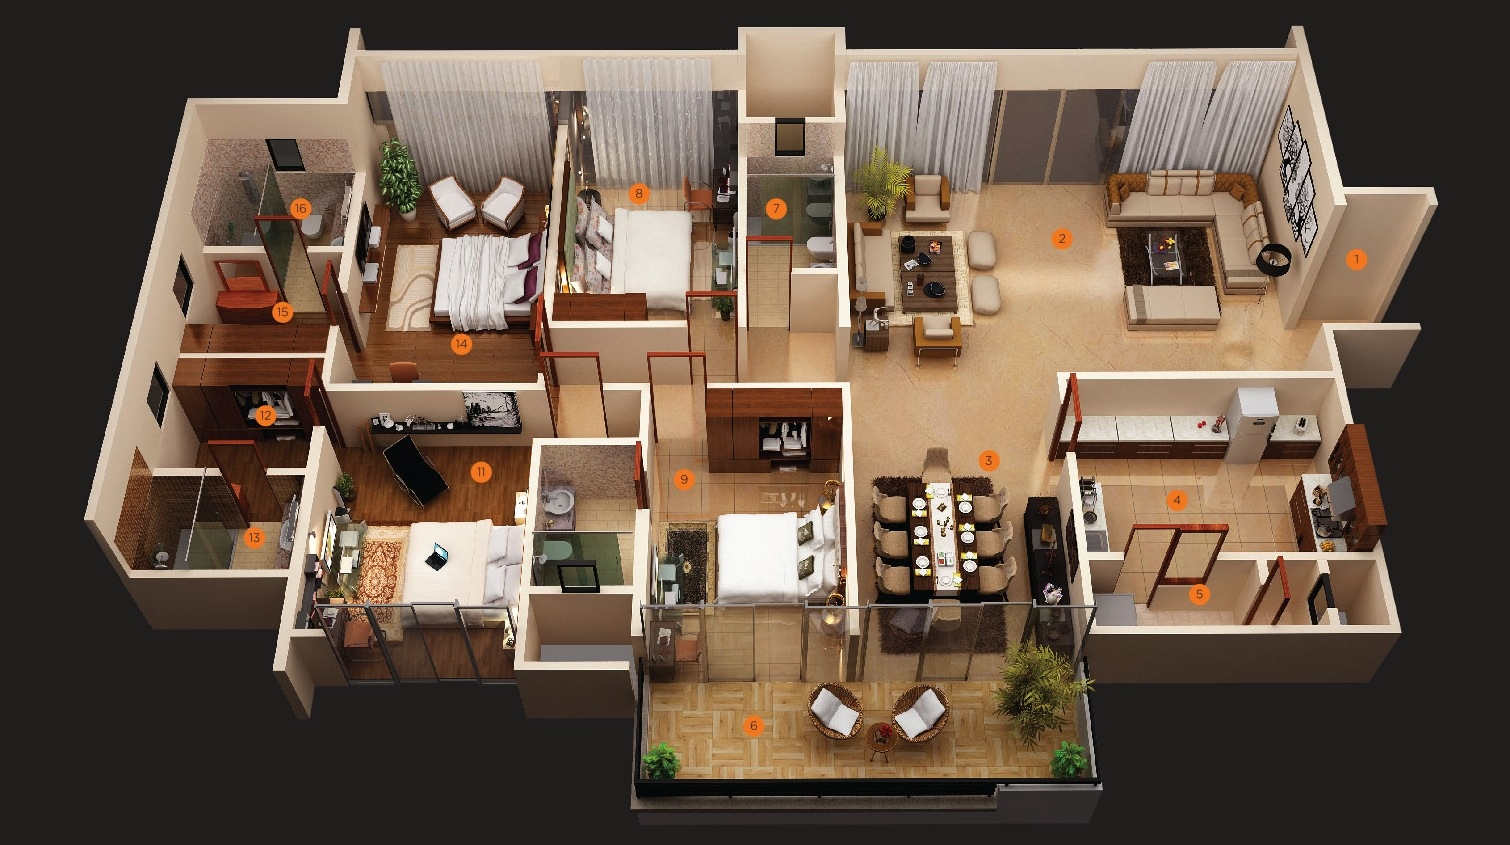 Modern 4 bedroom house plans decor units for Plan of bedroom designs